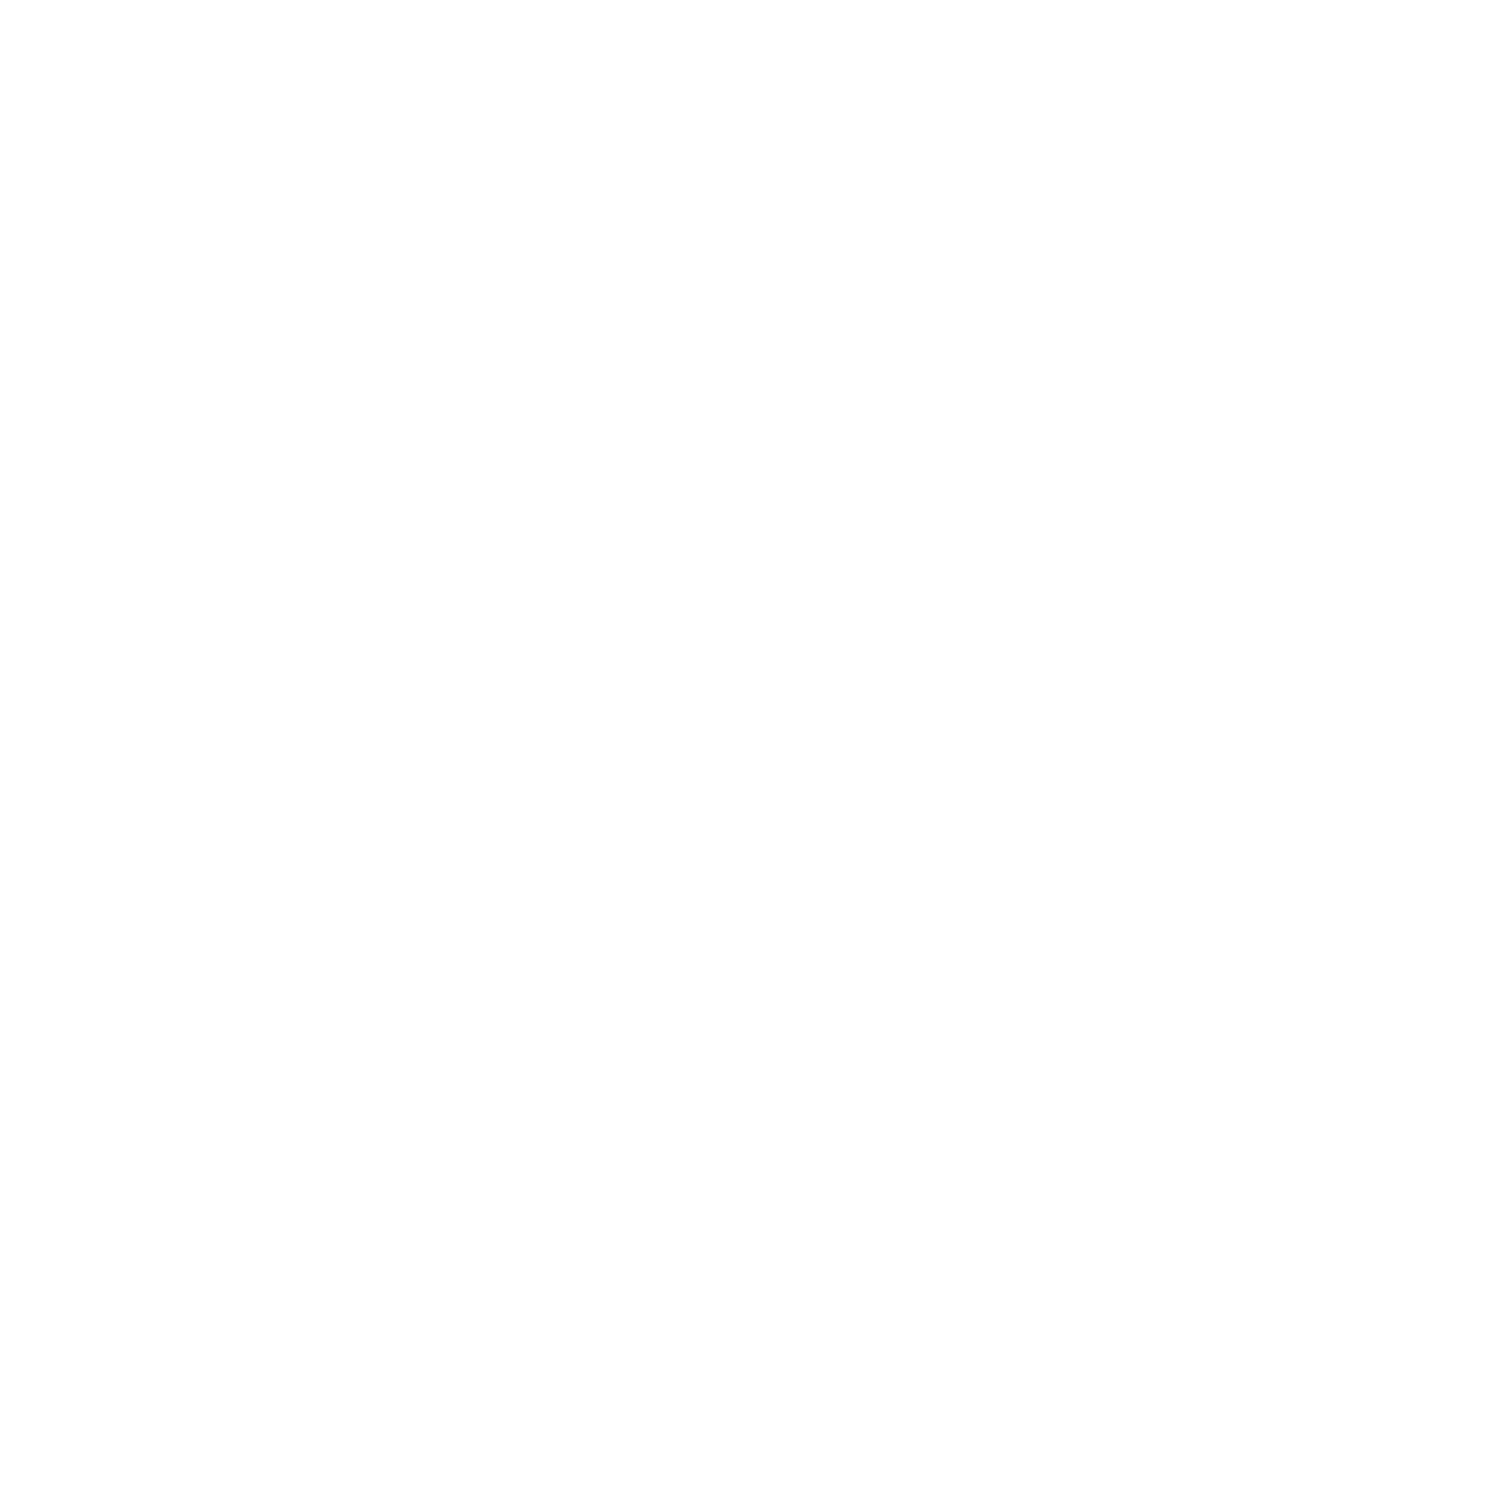 The Big Font Industry